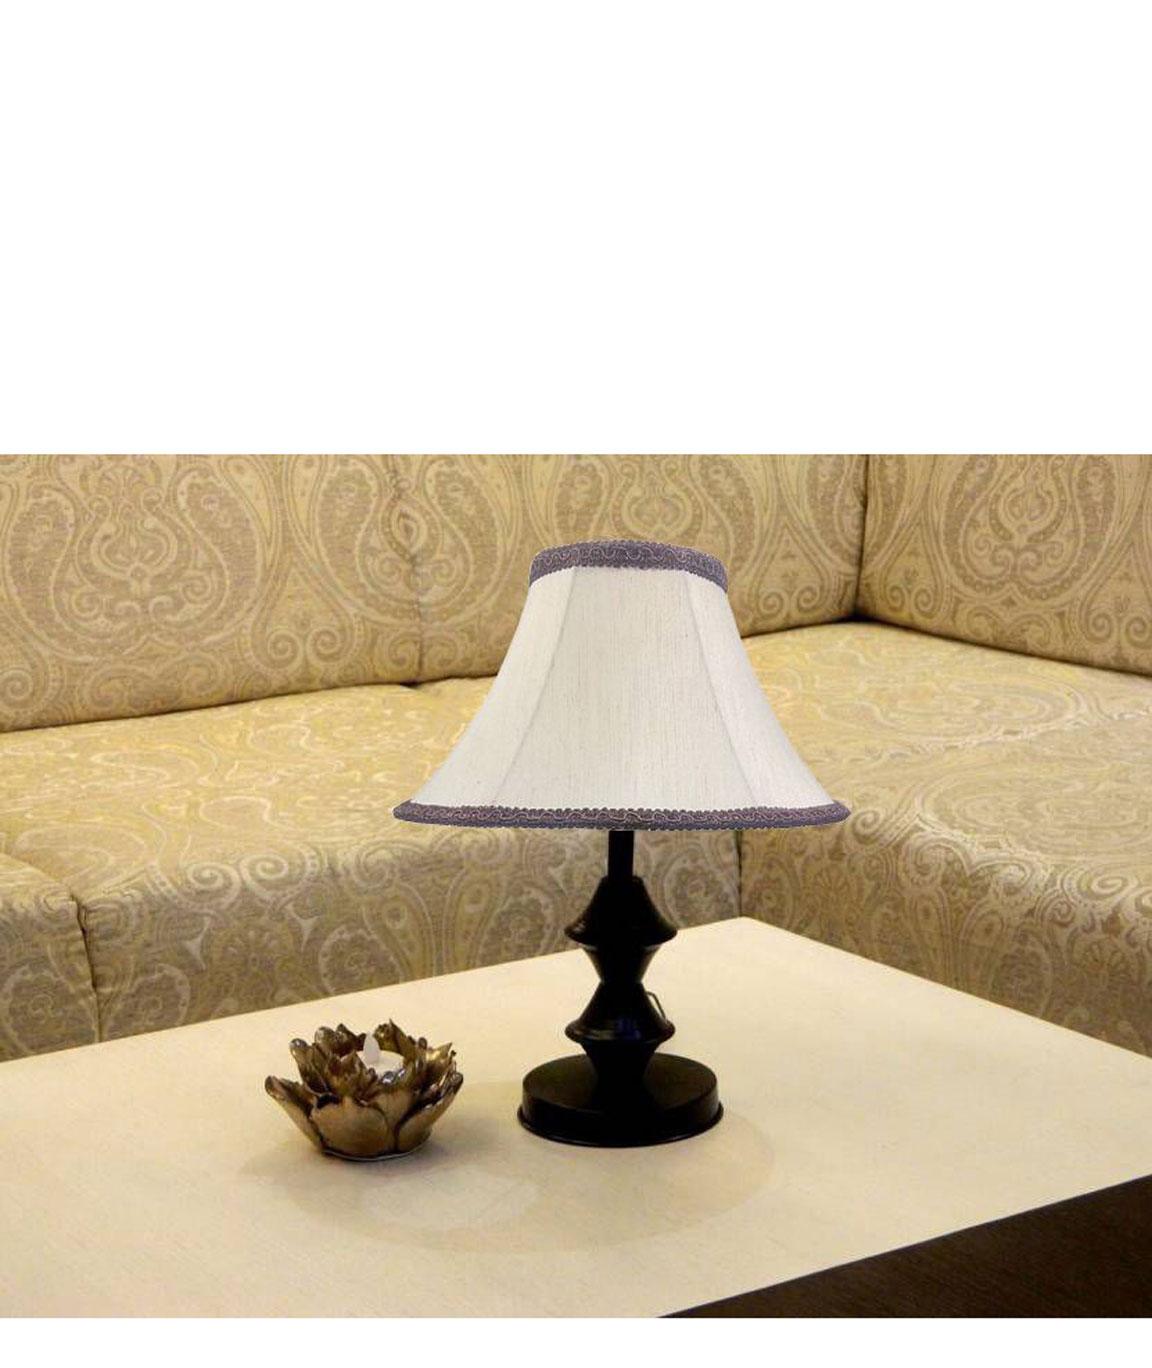 RDC Black Double Ring Stand Table Lamp with 10 Inches Round Slanting Cream-khadi with Brown Lace Border Lamp Shade